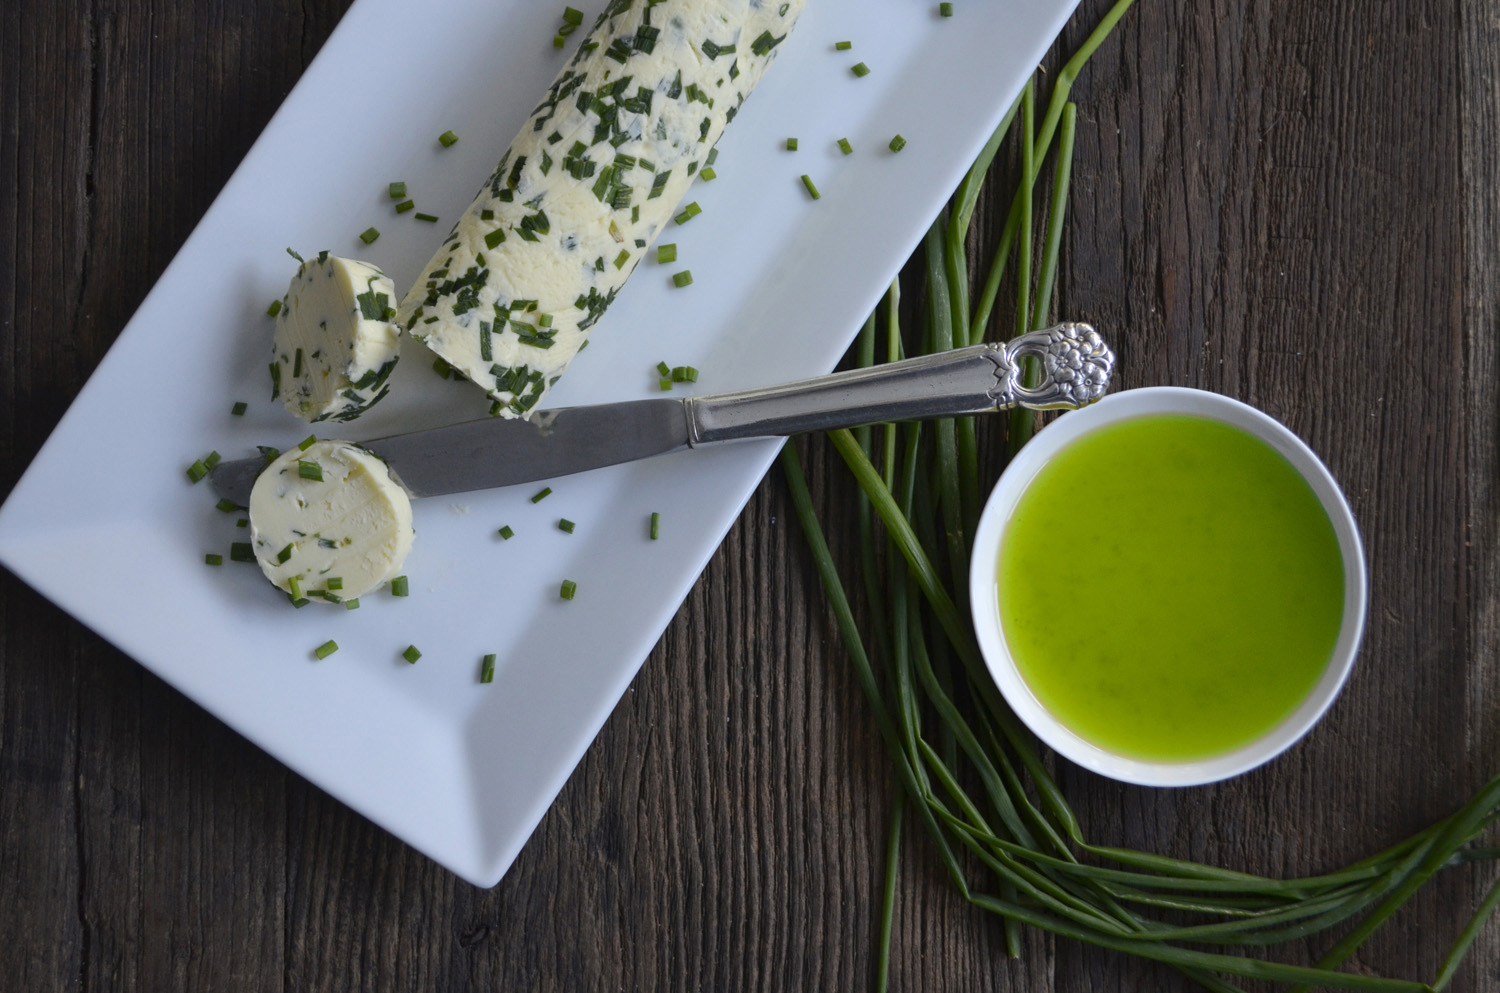 Chive Butter and Oil